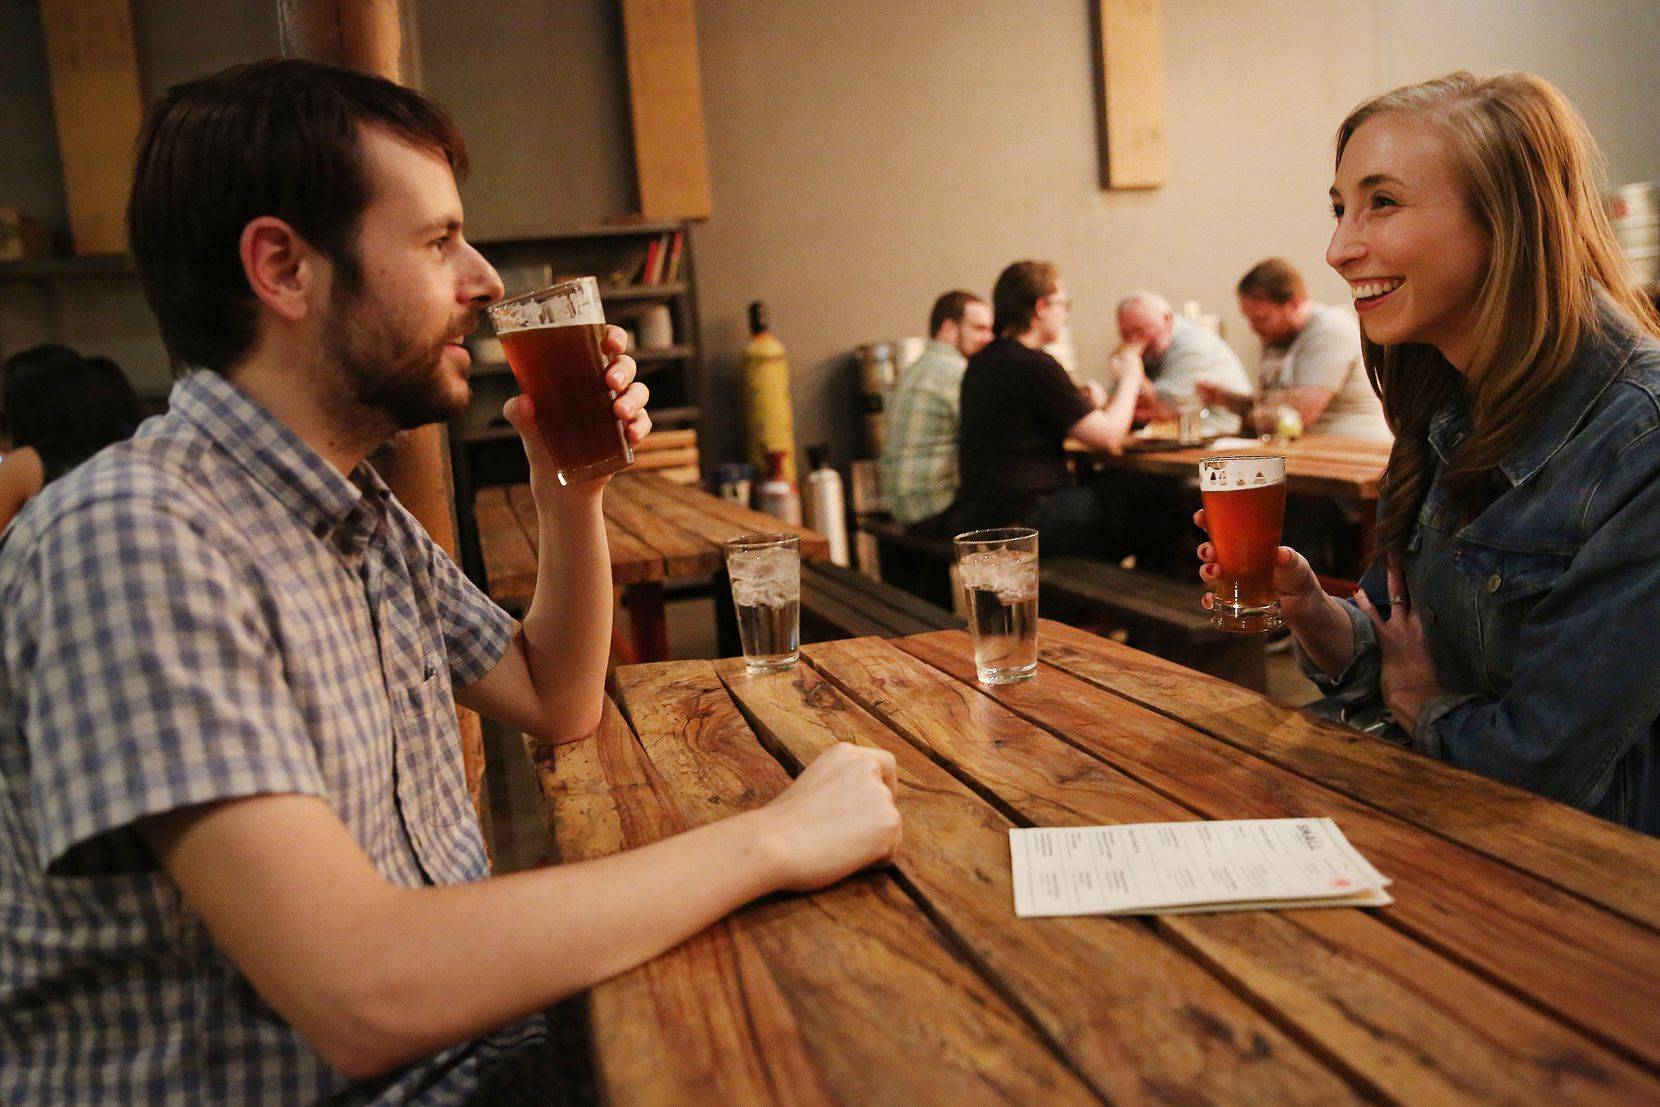 Greg Spagnolo and Jaci Spagnolo, of Dallas, drink beers inside Small Brewpub in Oak Cliff.